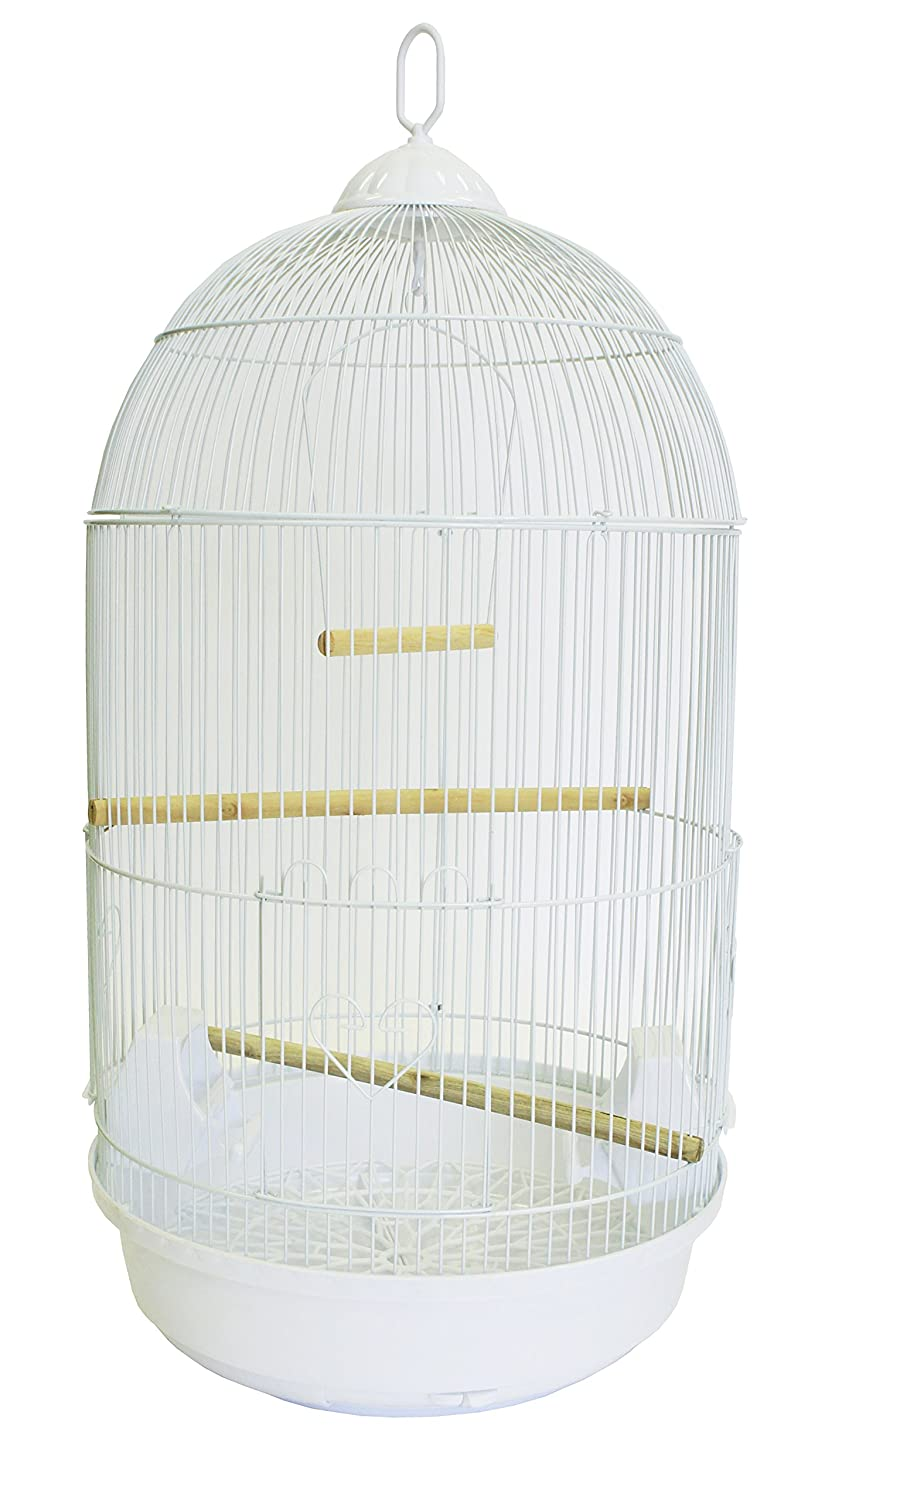 YML A1594 Bar Spacing Round Bird Cage, Large, Black A1594BLK